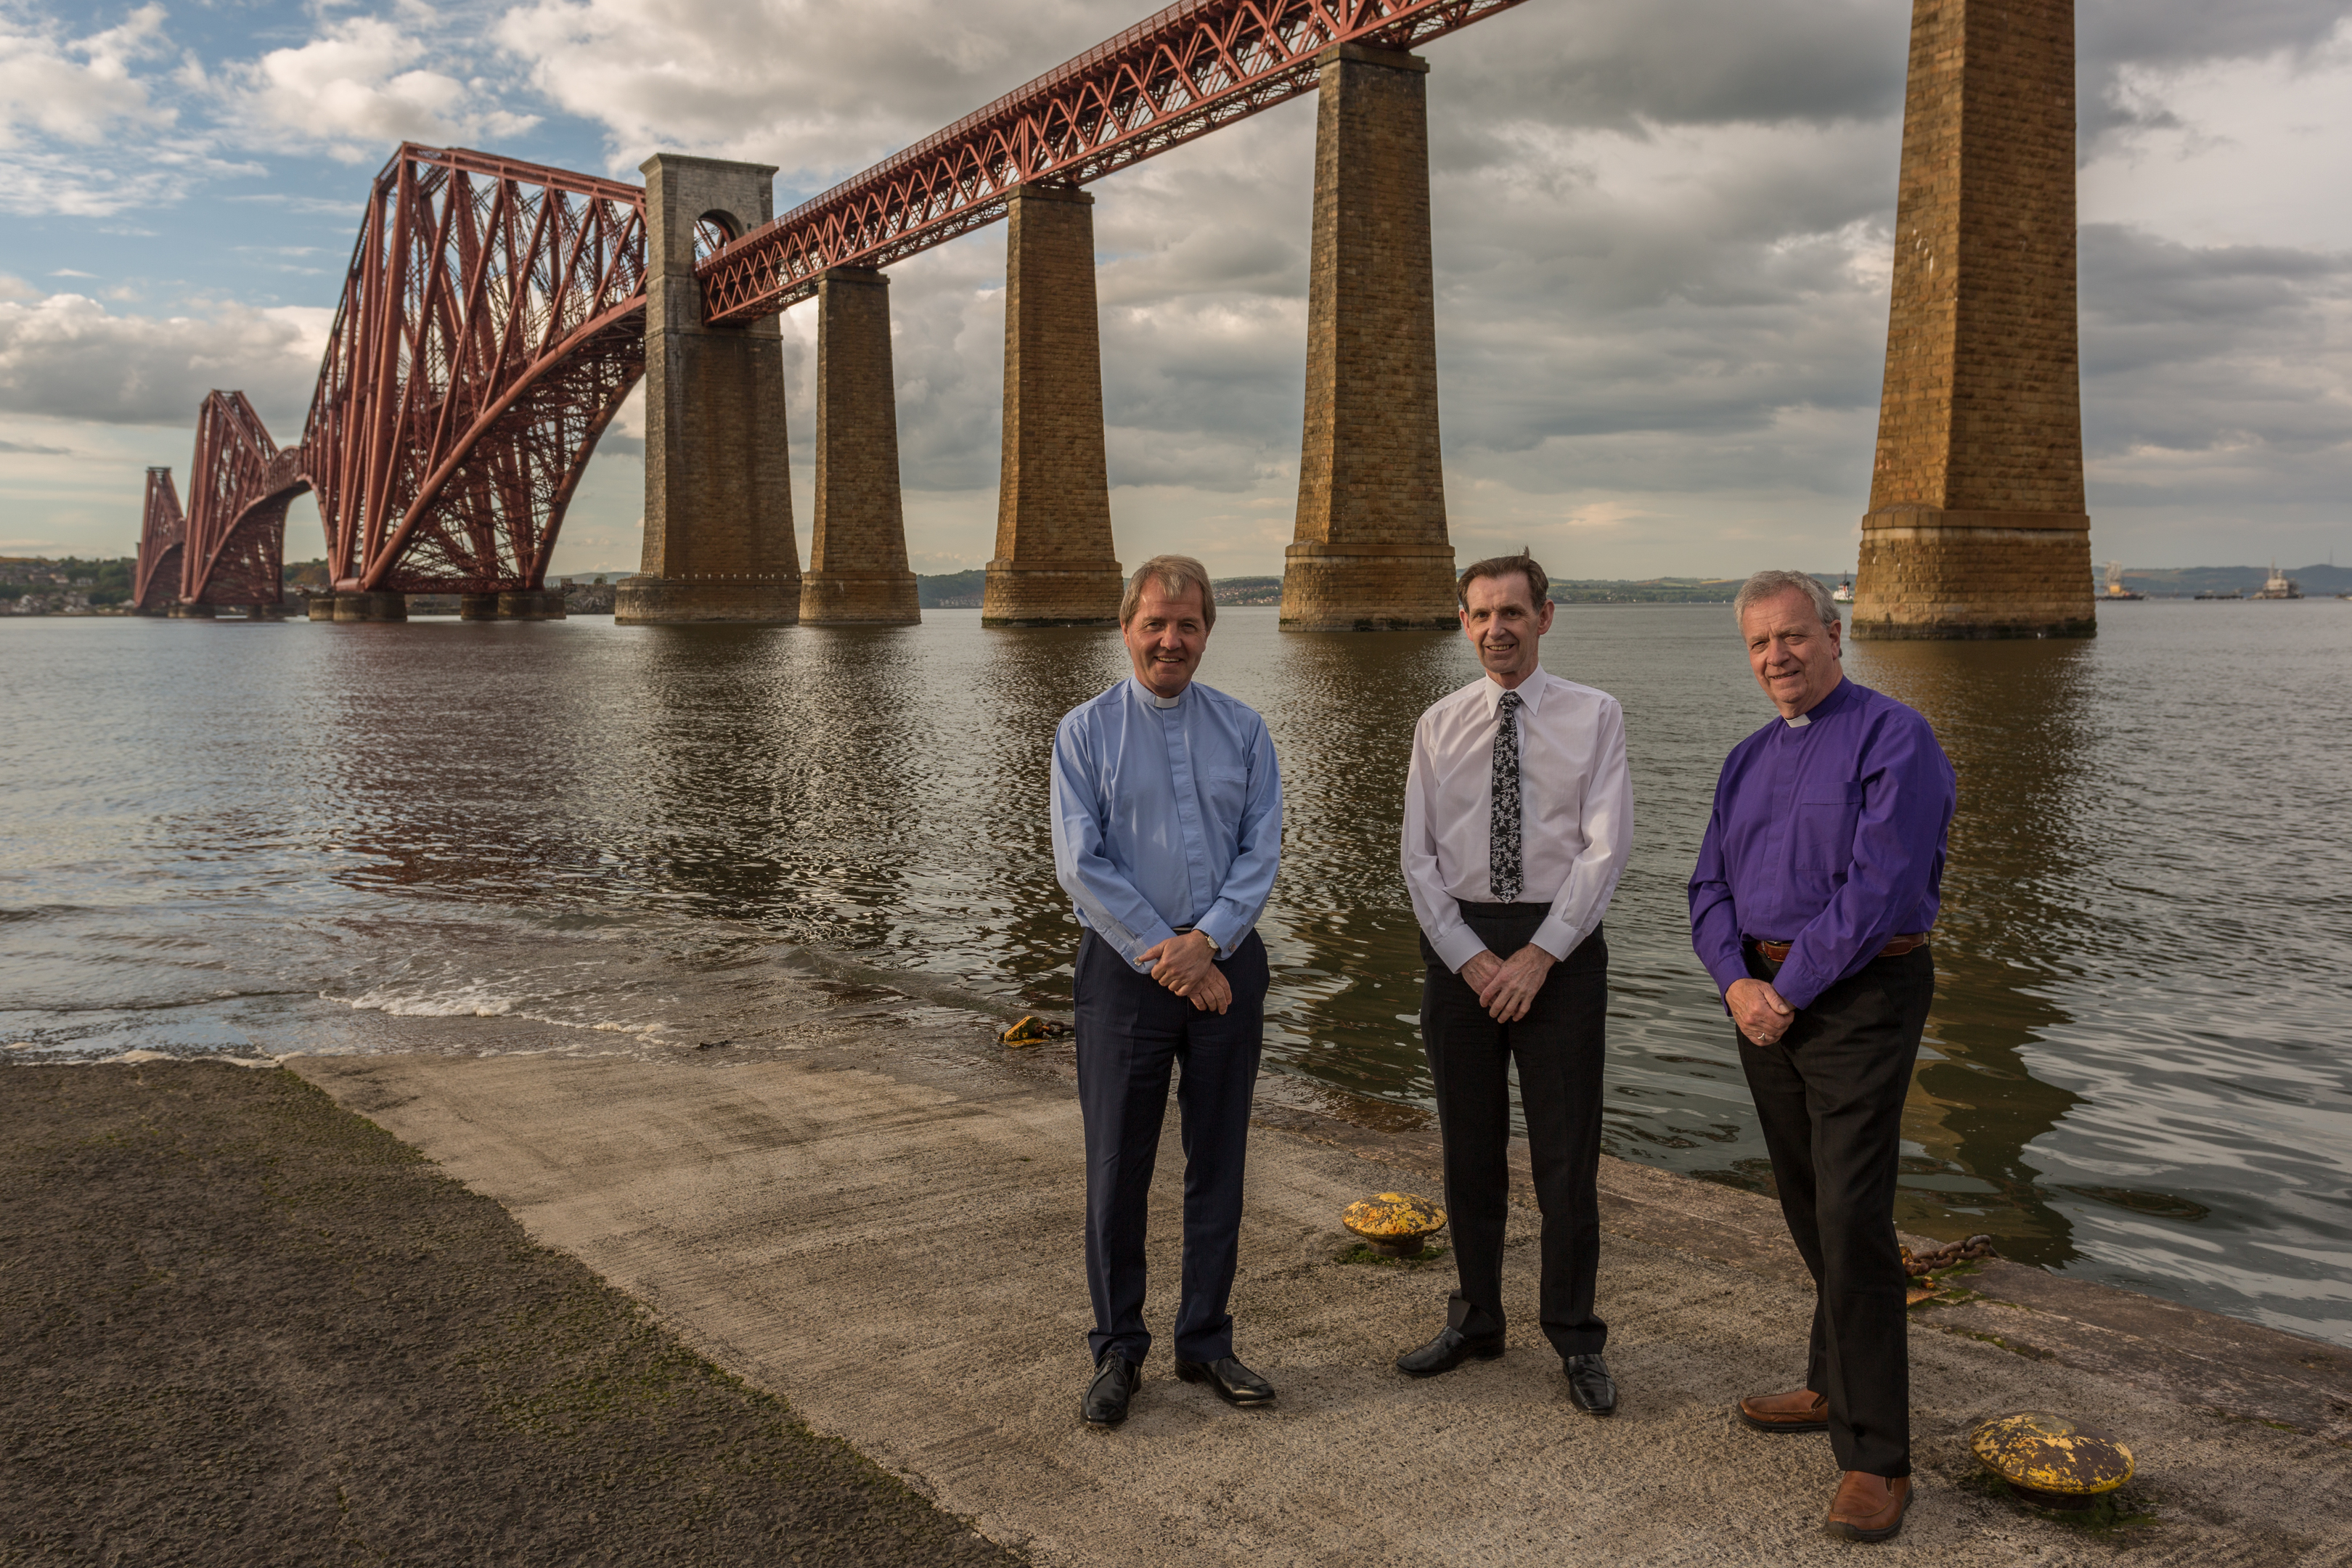 Dr Barr, Mr Bailey and Dr Chalmers will take a leap of faith as they abseil down the Forth Bridge